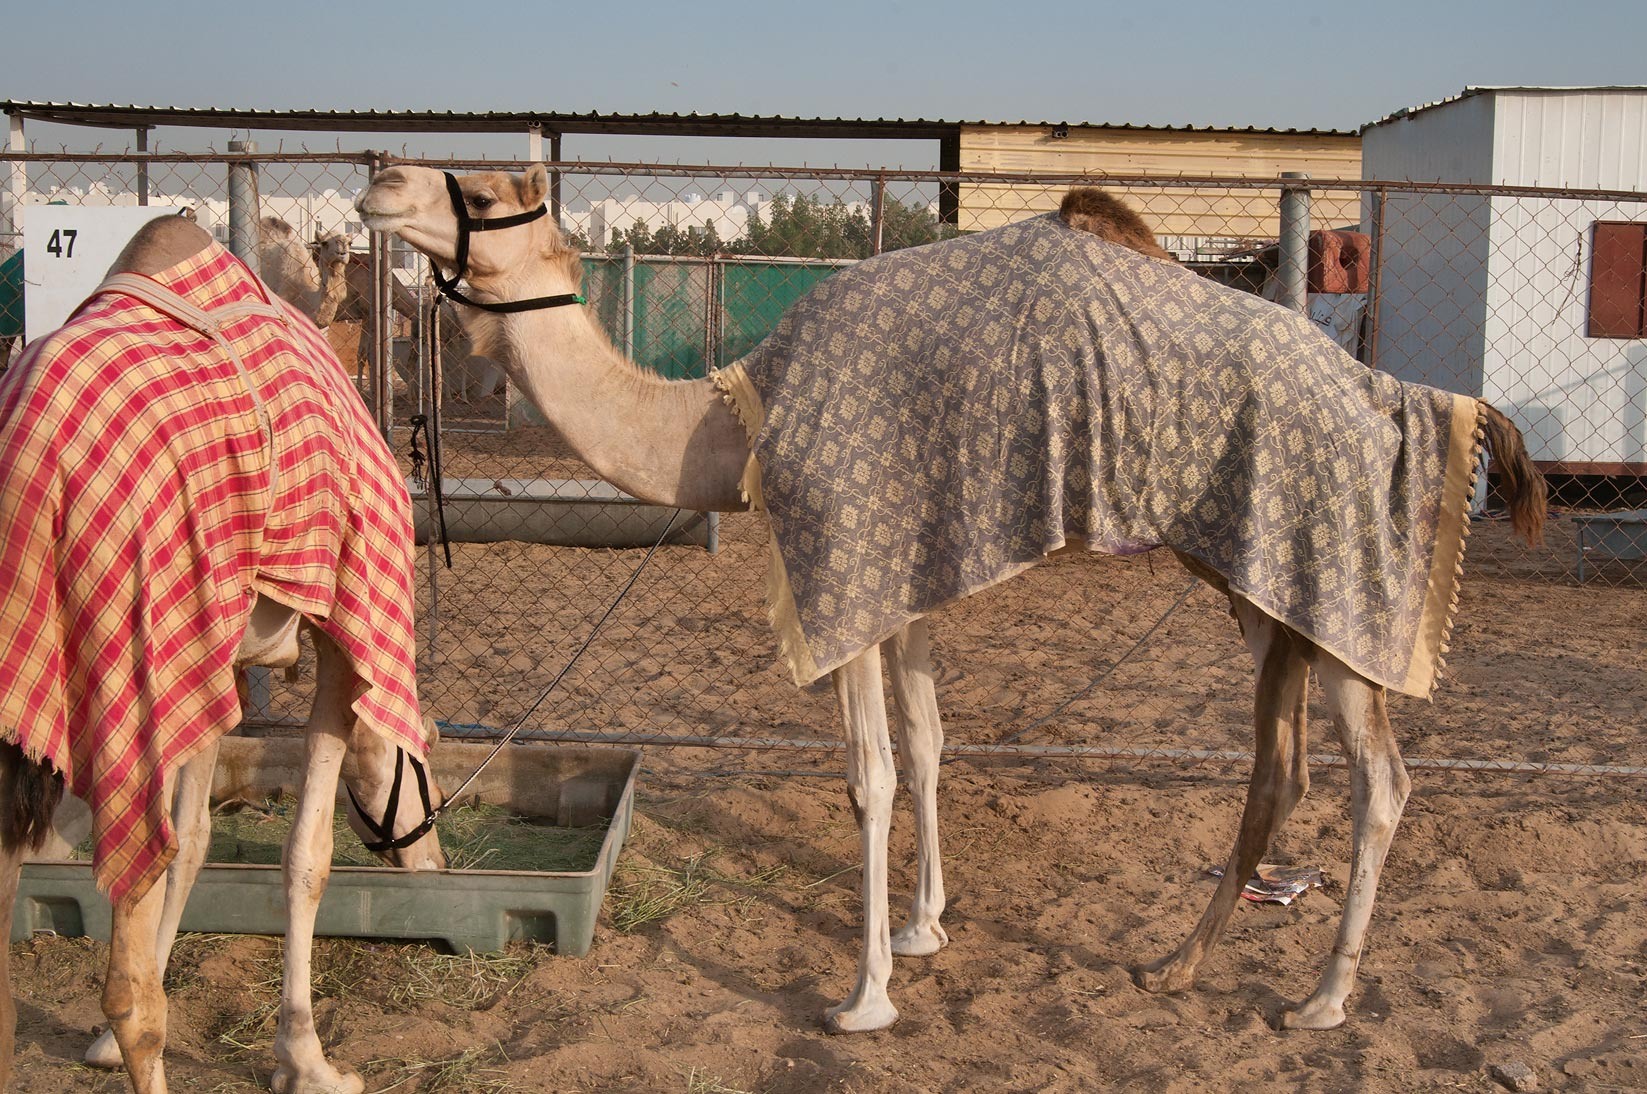 Two camels wearing covers in Camel Market, Wholesale Markets area. Doha, Qatar